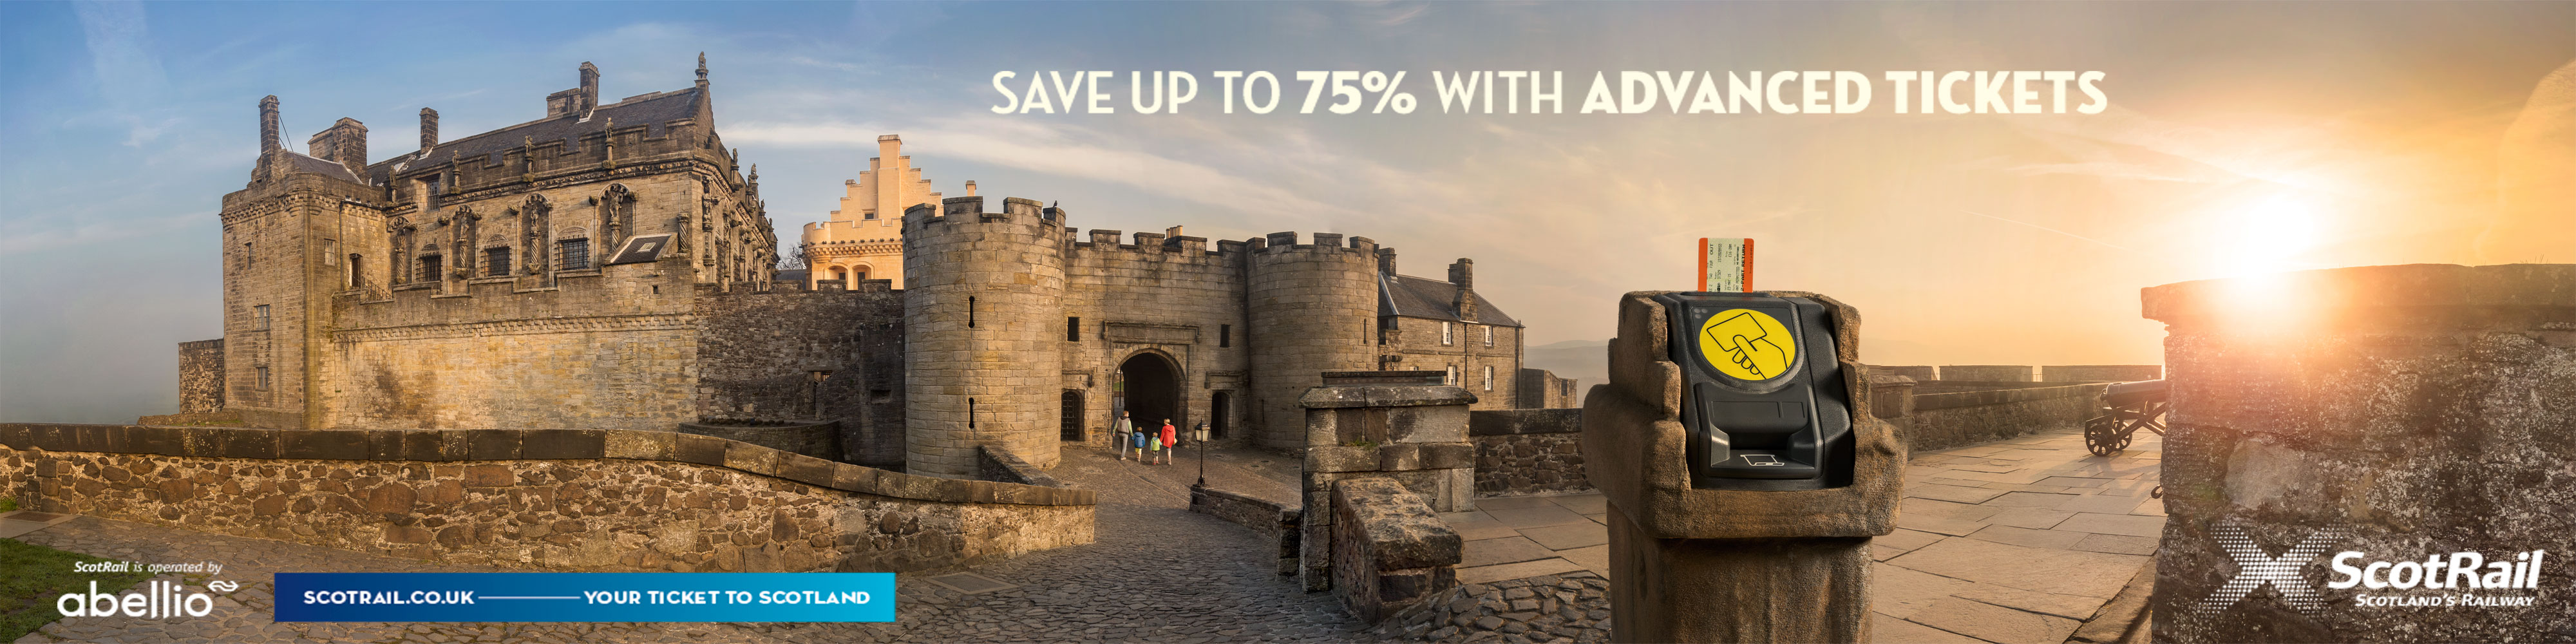 Scotrail Advert at Stirling Castle with young family visiting historic location, Scotland